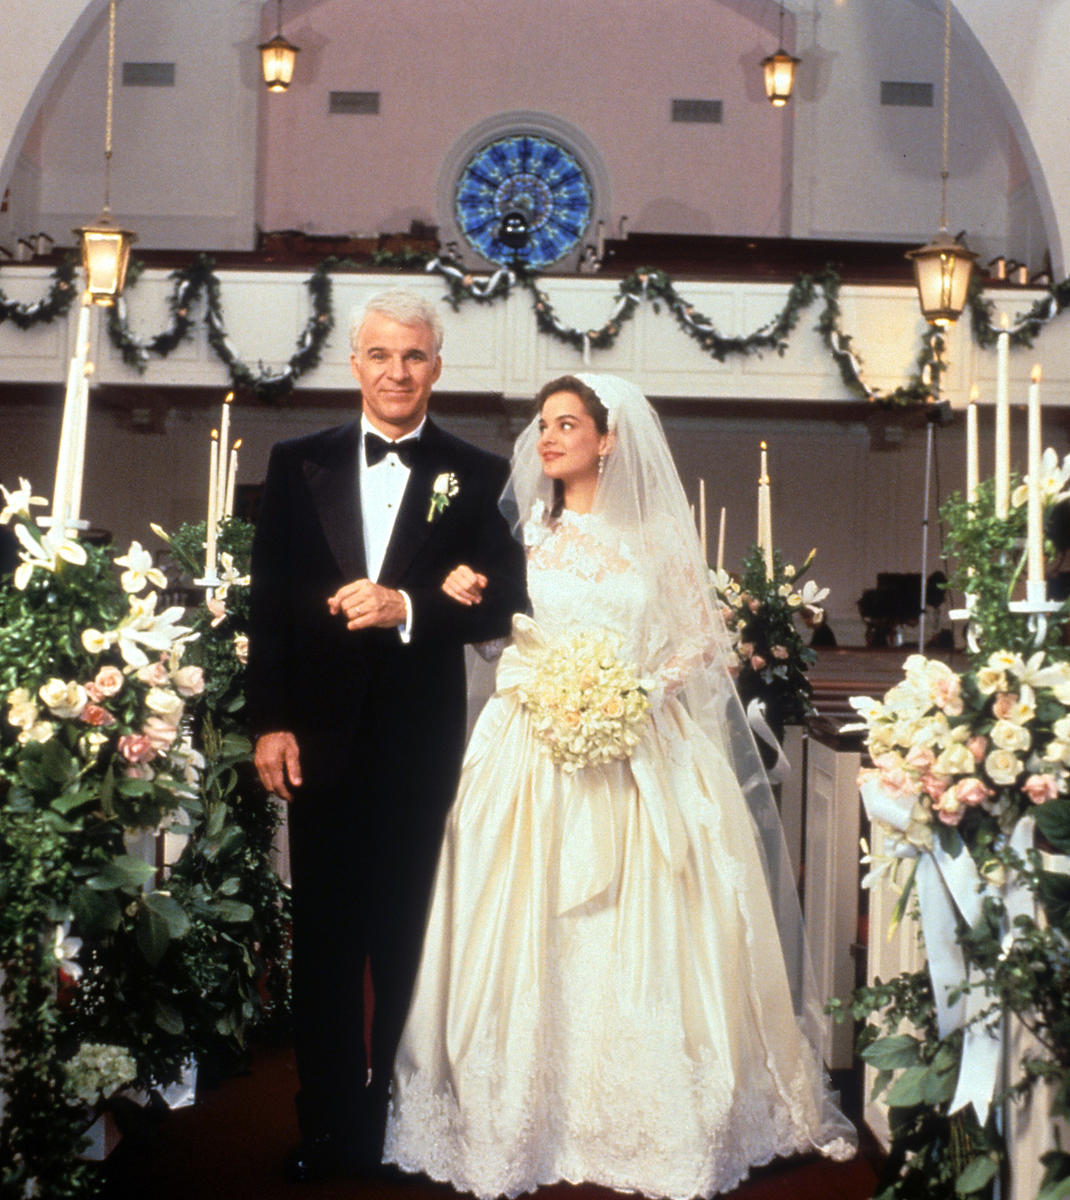 Father of the Bride Movie Wedding Scene with Steve Martin and Kimberly Williams-Paisly